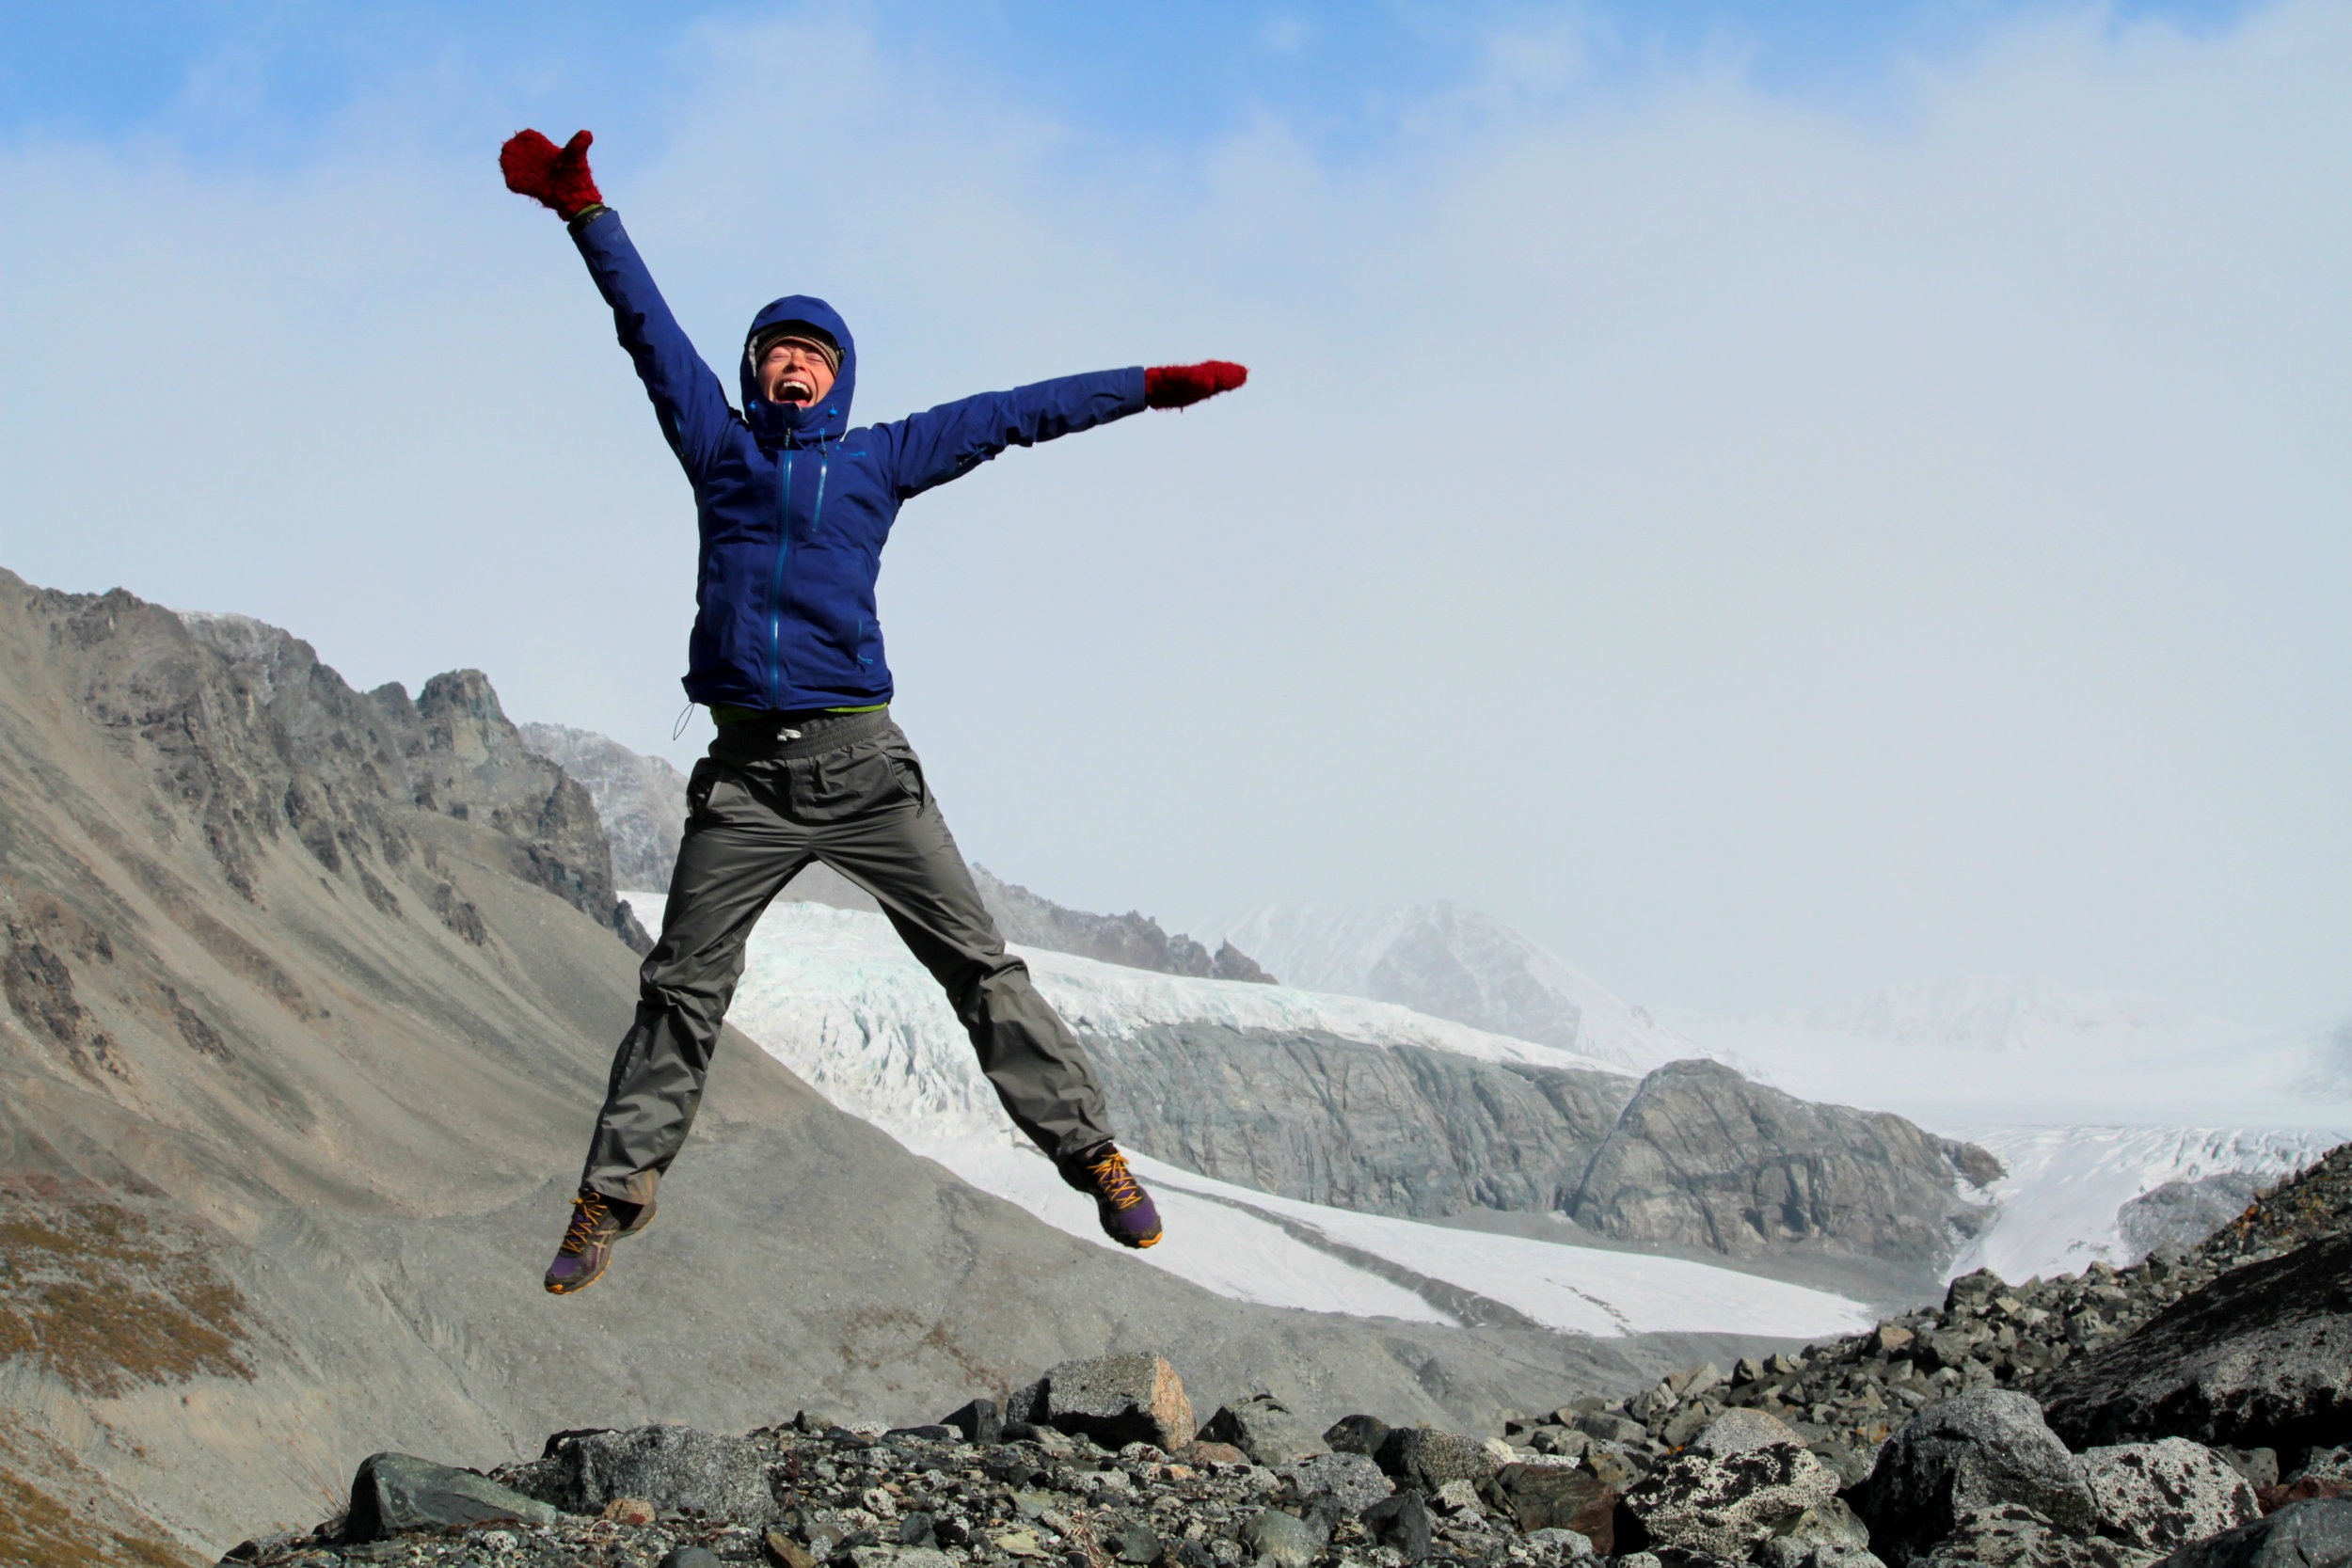 Being overjoyed at the Gulkana Glacier in the Alaska Range, photo by Bryce Weibley